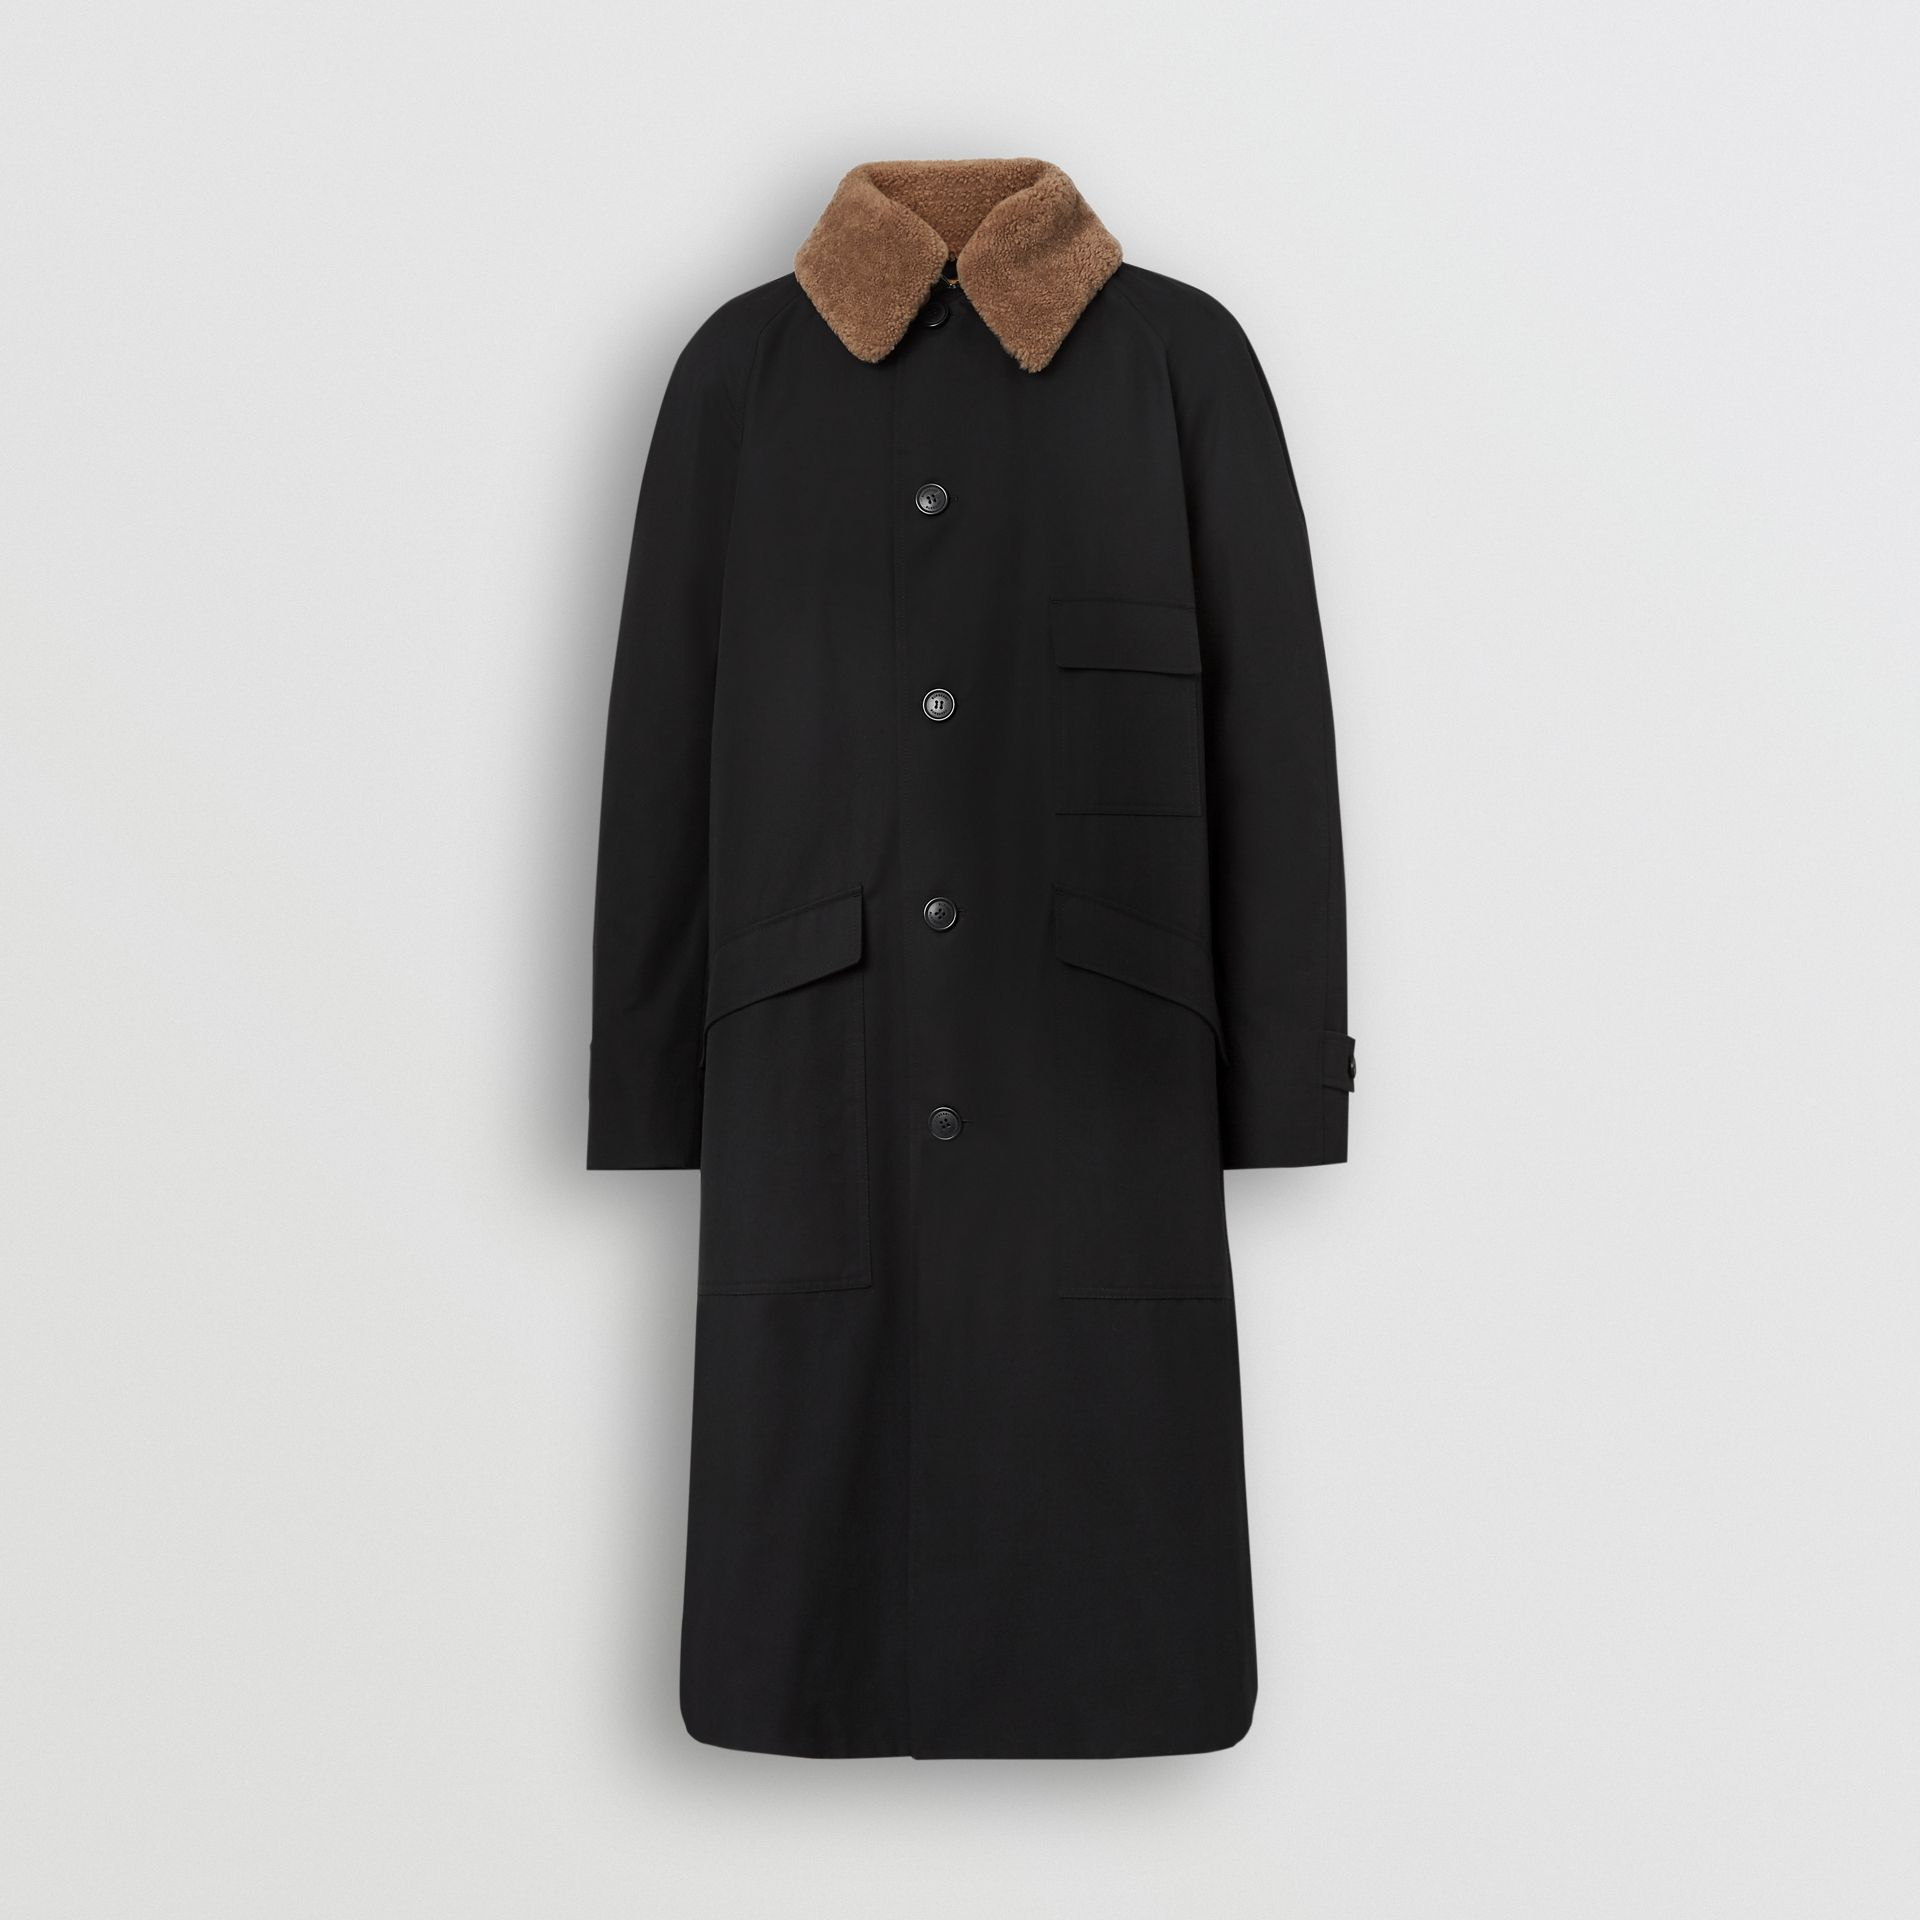 Contrast Shearling Collar Cotton Car Coat in Black - Men | Burberry - gallery image 7